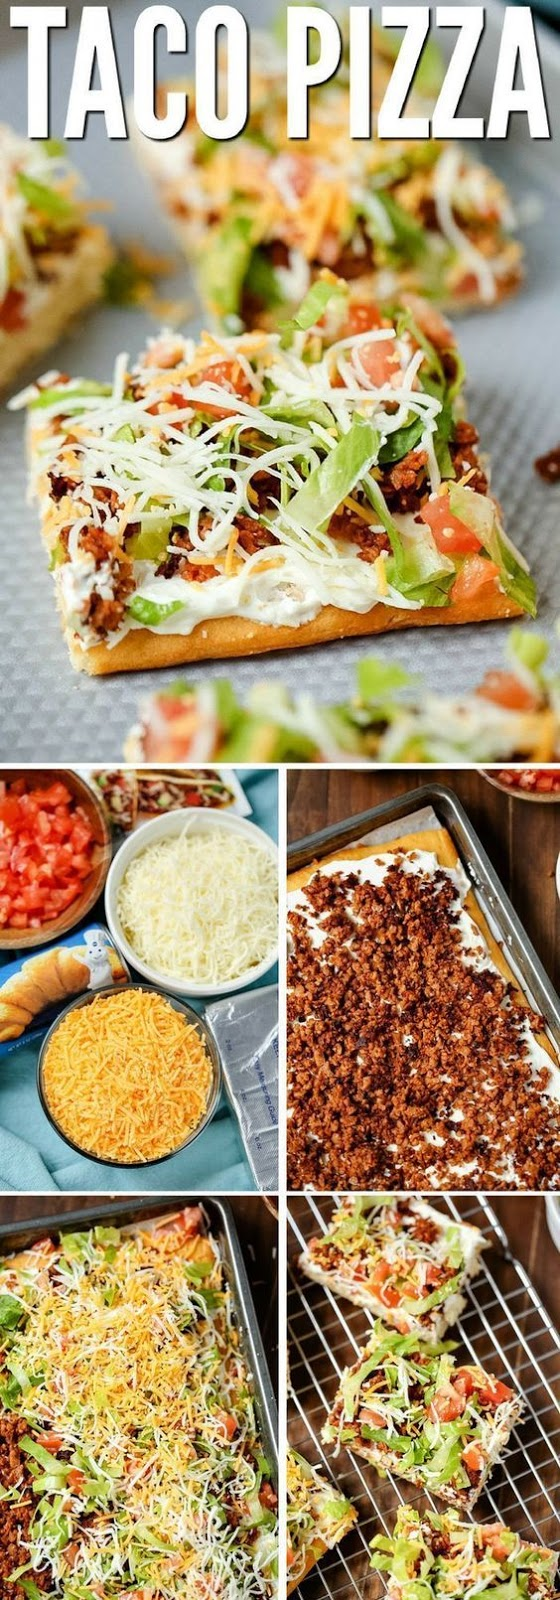 The Best Easy Taco Pizza Recipe #recipes #dinnerrecipes #quickdinnerrecipes #food #foodporn #healthy #yummy #instafood #foodie #delicious #dinner #breakfast #dessert #lunch #vegan #cake #eatclean #homemade #diet #healthyfood #cleaneating #foodstagram